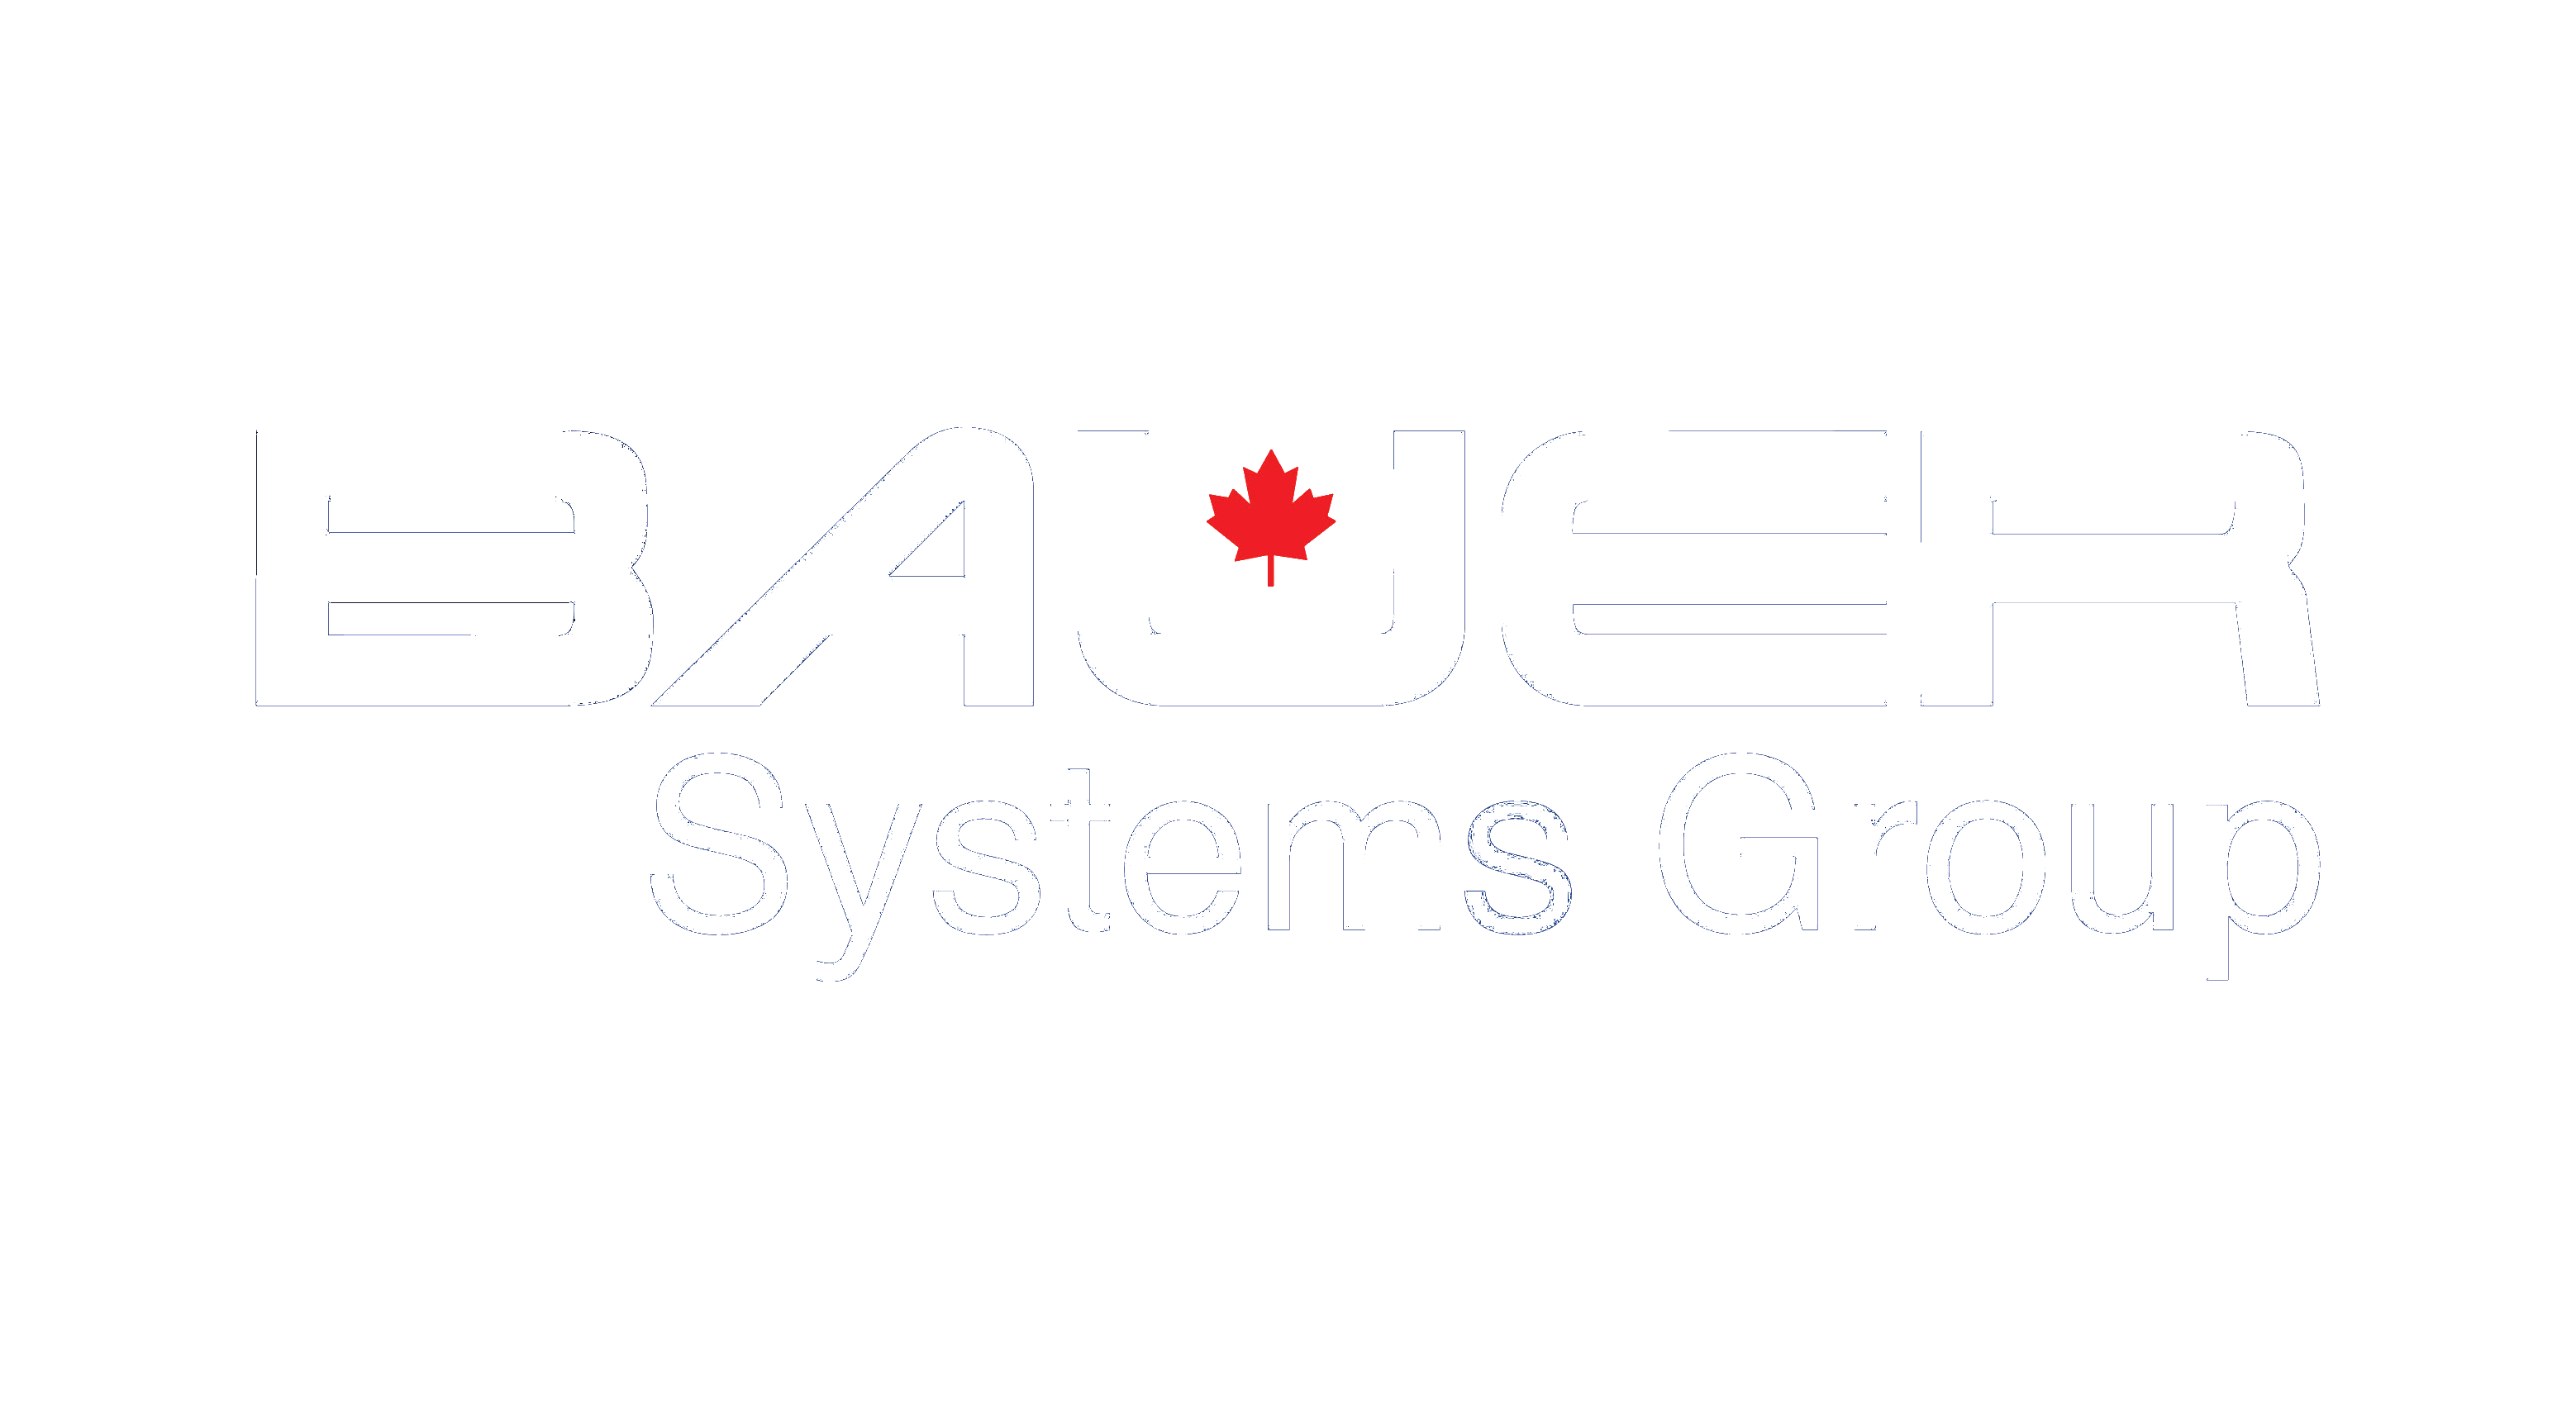 Bauer Systems Group